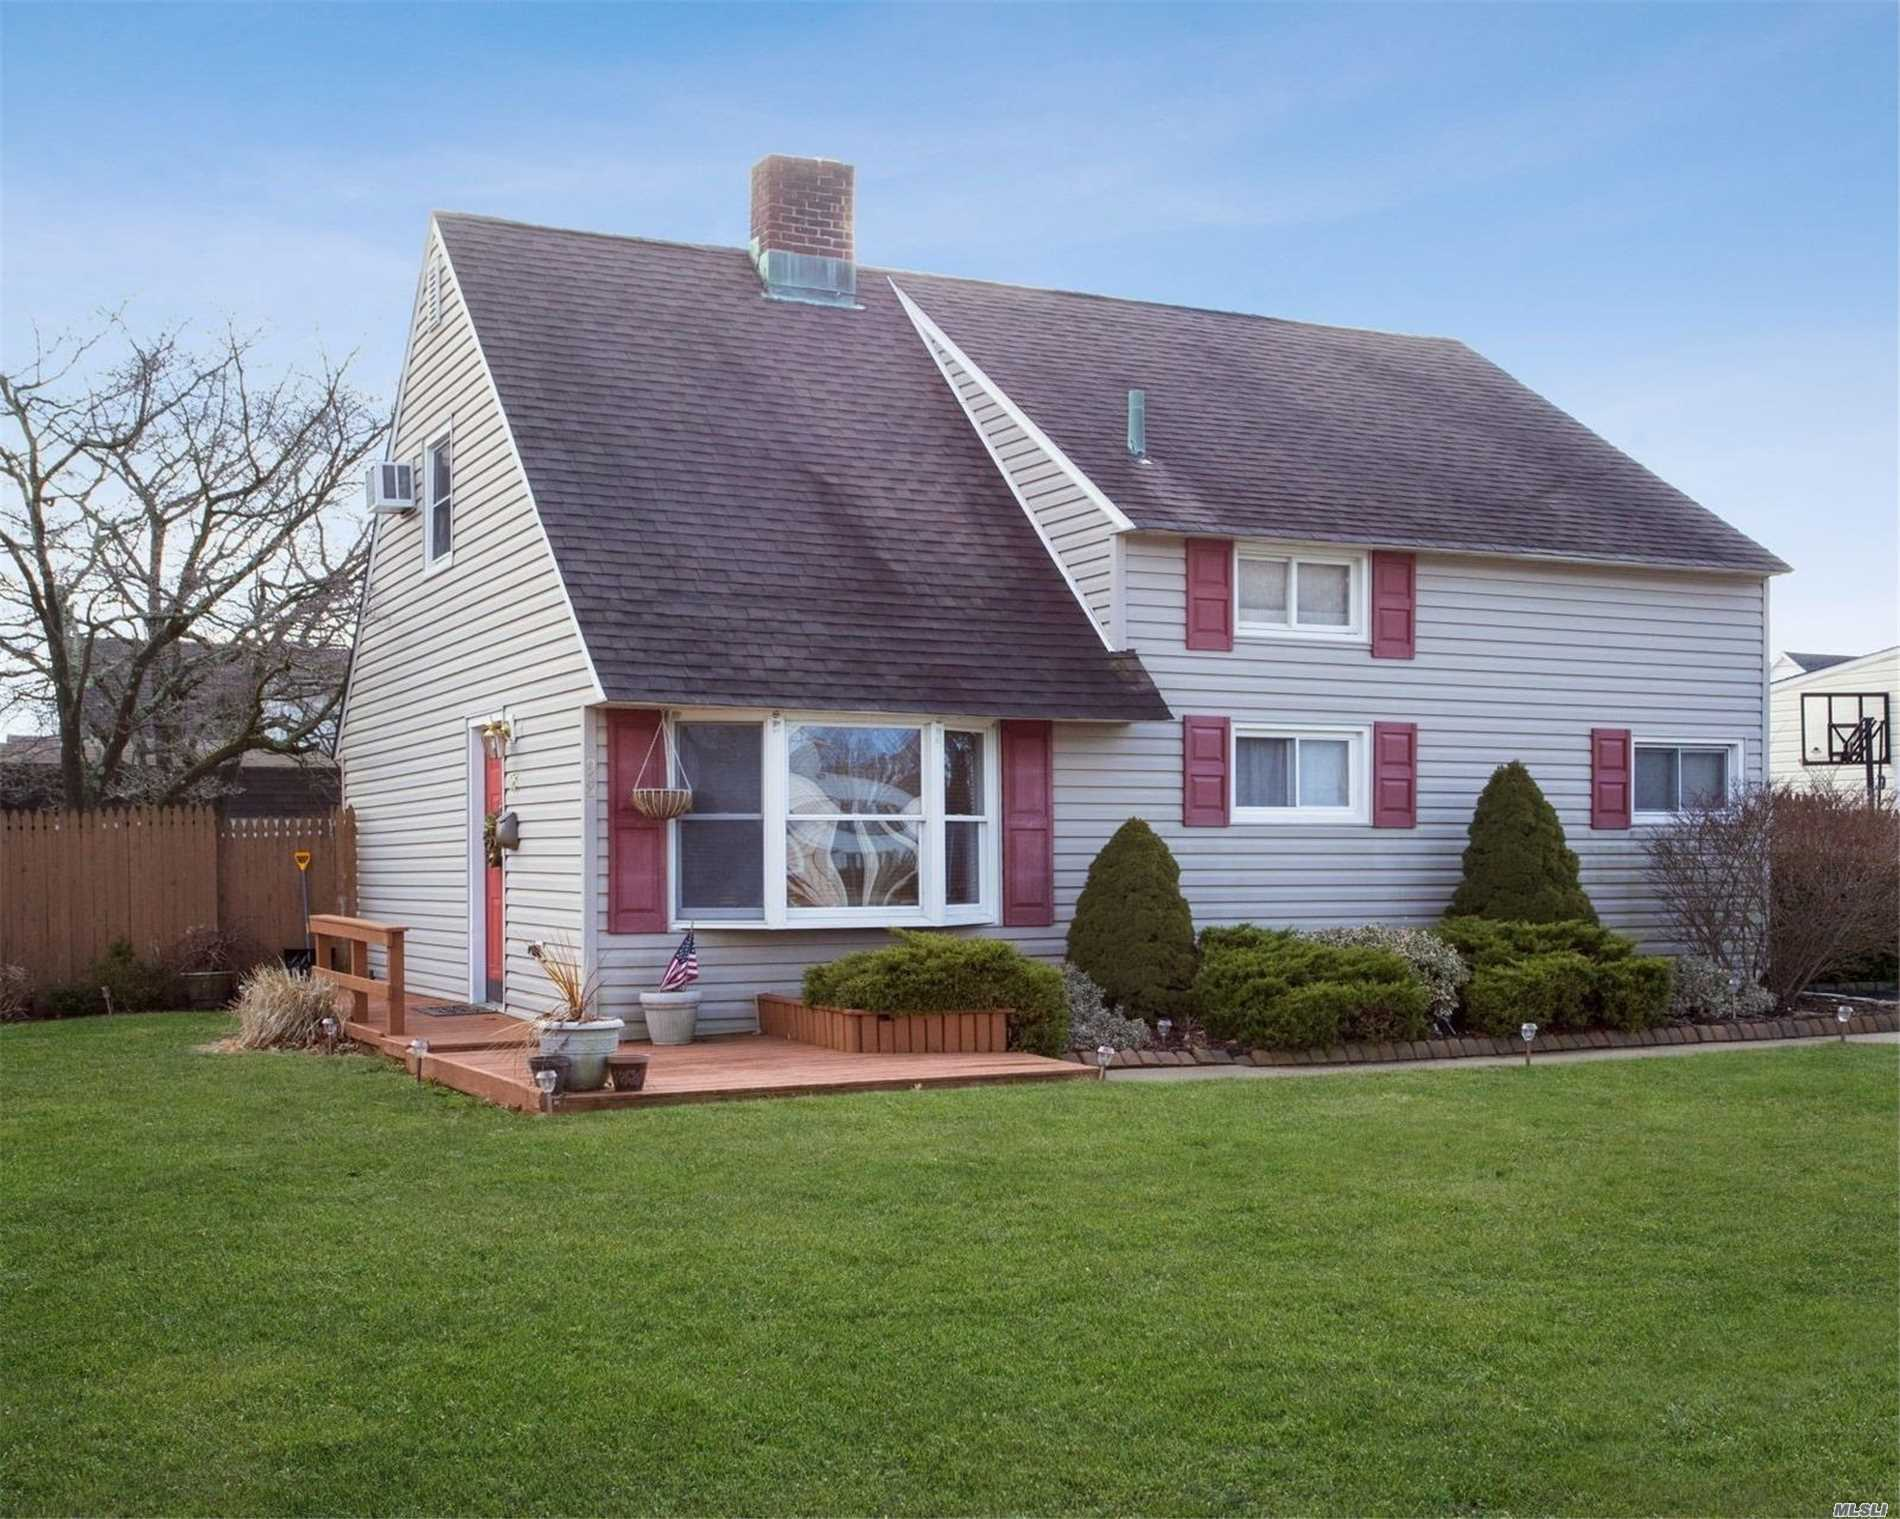 Move Right Into This Charming Home With Large Corner Yard. Featuring Wood Flooring Updated Roof, Siding, Windows, Boiler/Burner & Above Ground Tank, 150 Amp Elc Service And Much More. Close To All Levittown Pools With Parks, Schools, Shopping, Major Parkways & Transportation